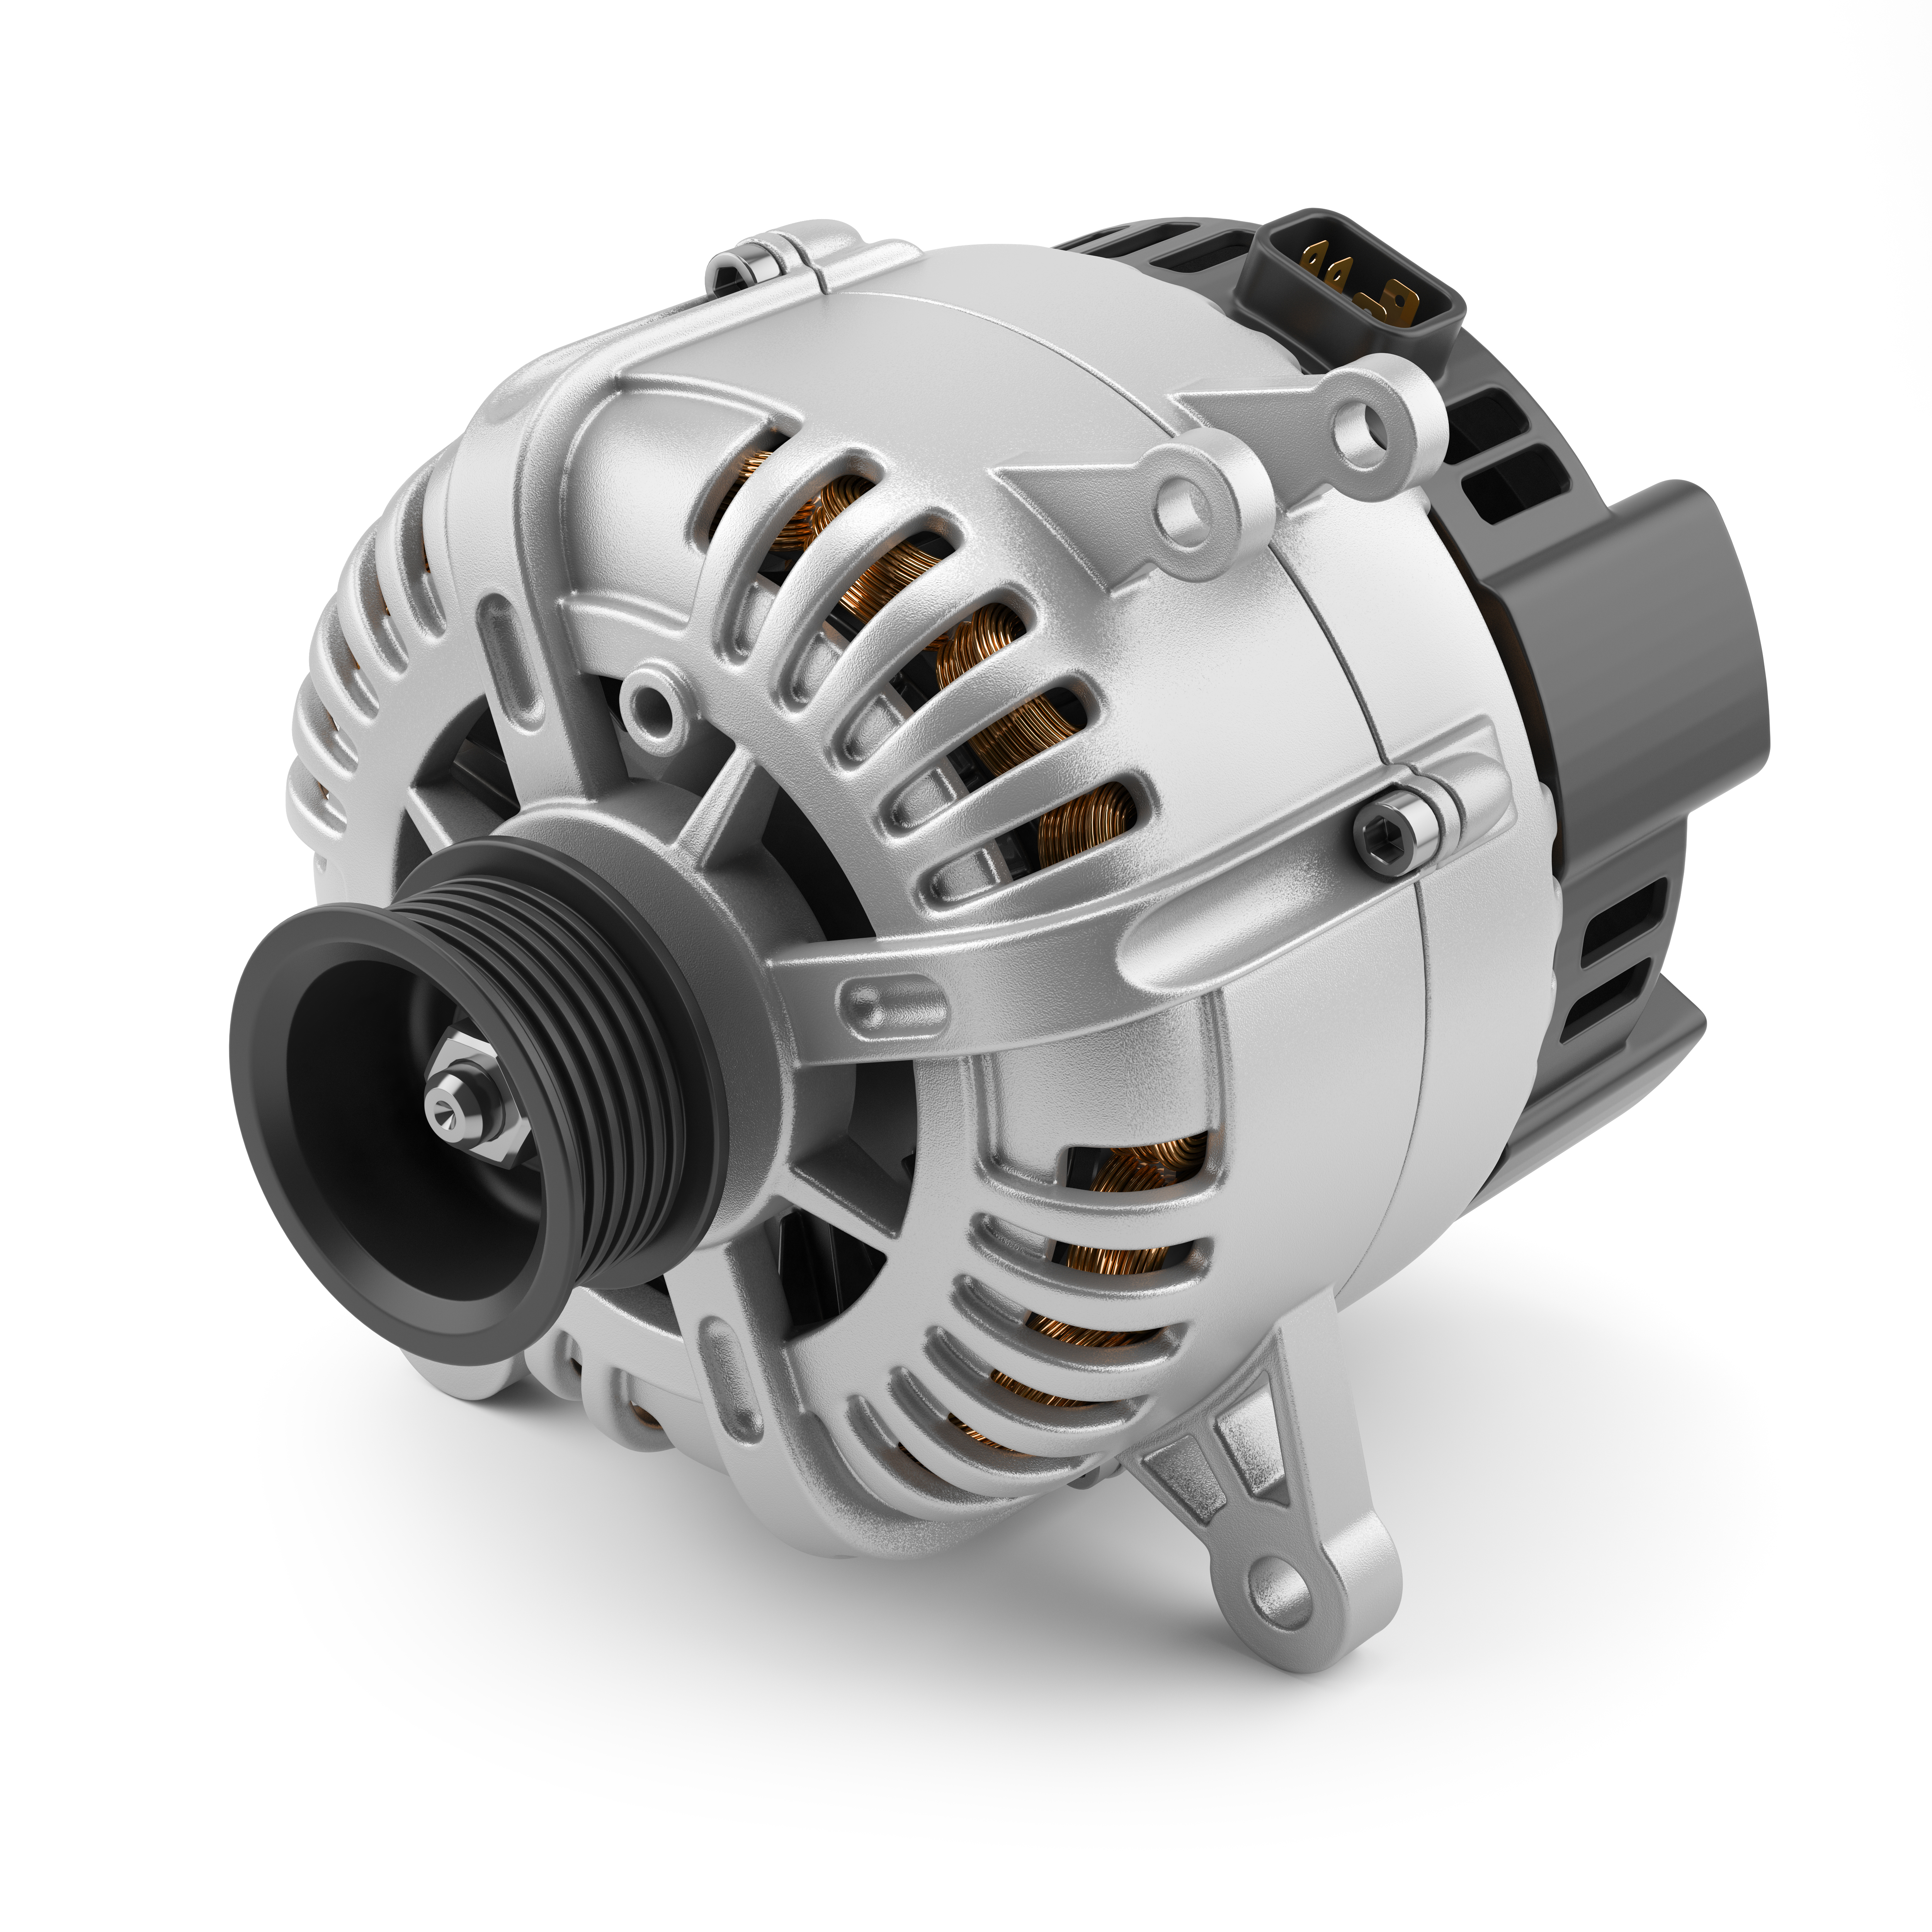 Where to find your car's alternator